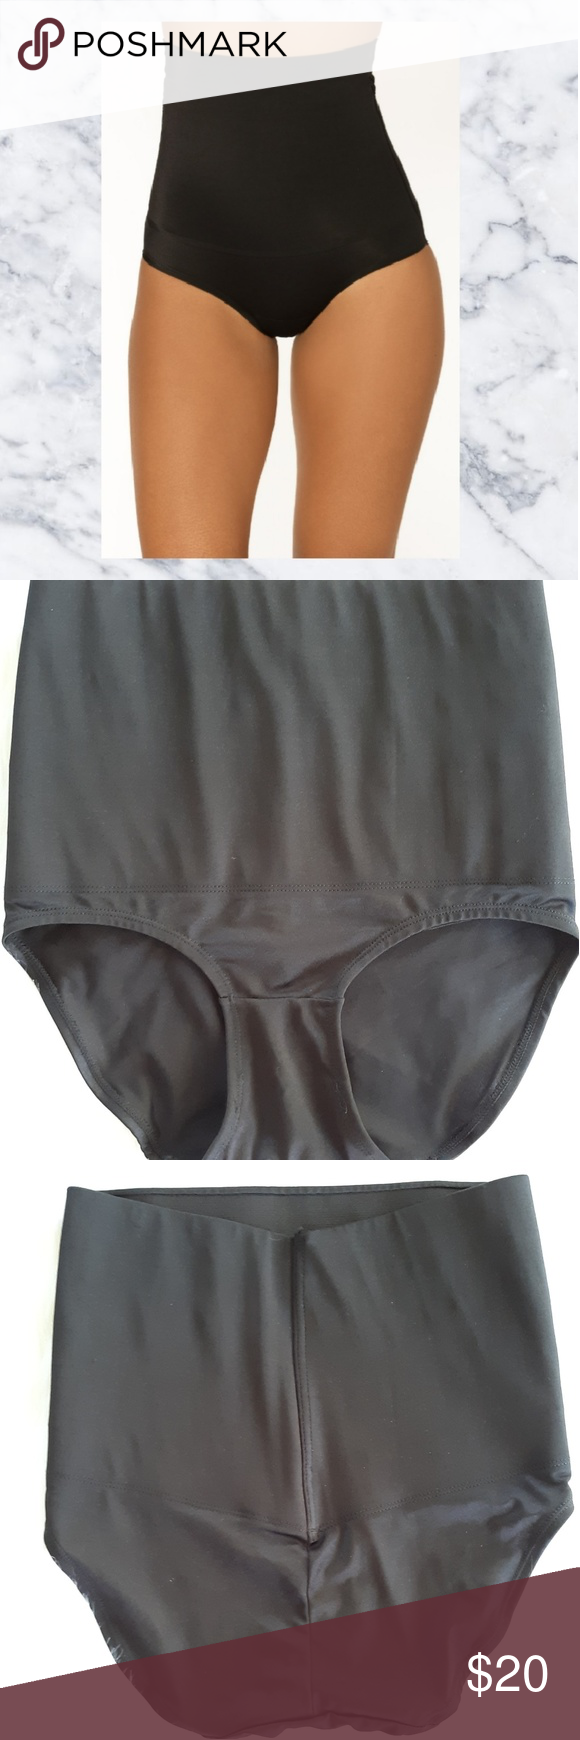 1a031289d0889 NWOT Shapewear Panty Women s new without tags black Marilyn Monroe shapewear  panty size medium. Thanks for looking! I offer great bundle discounts